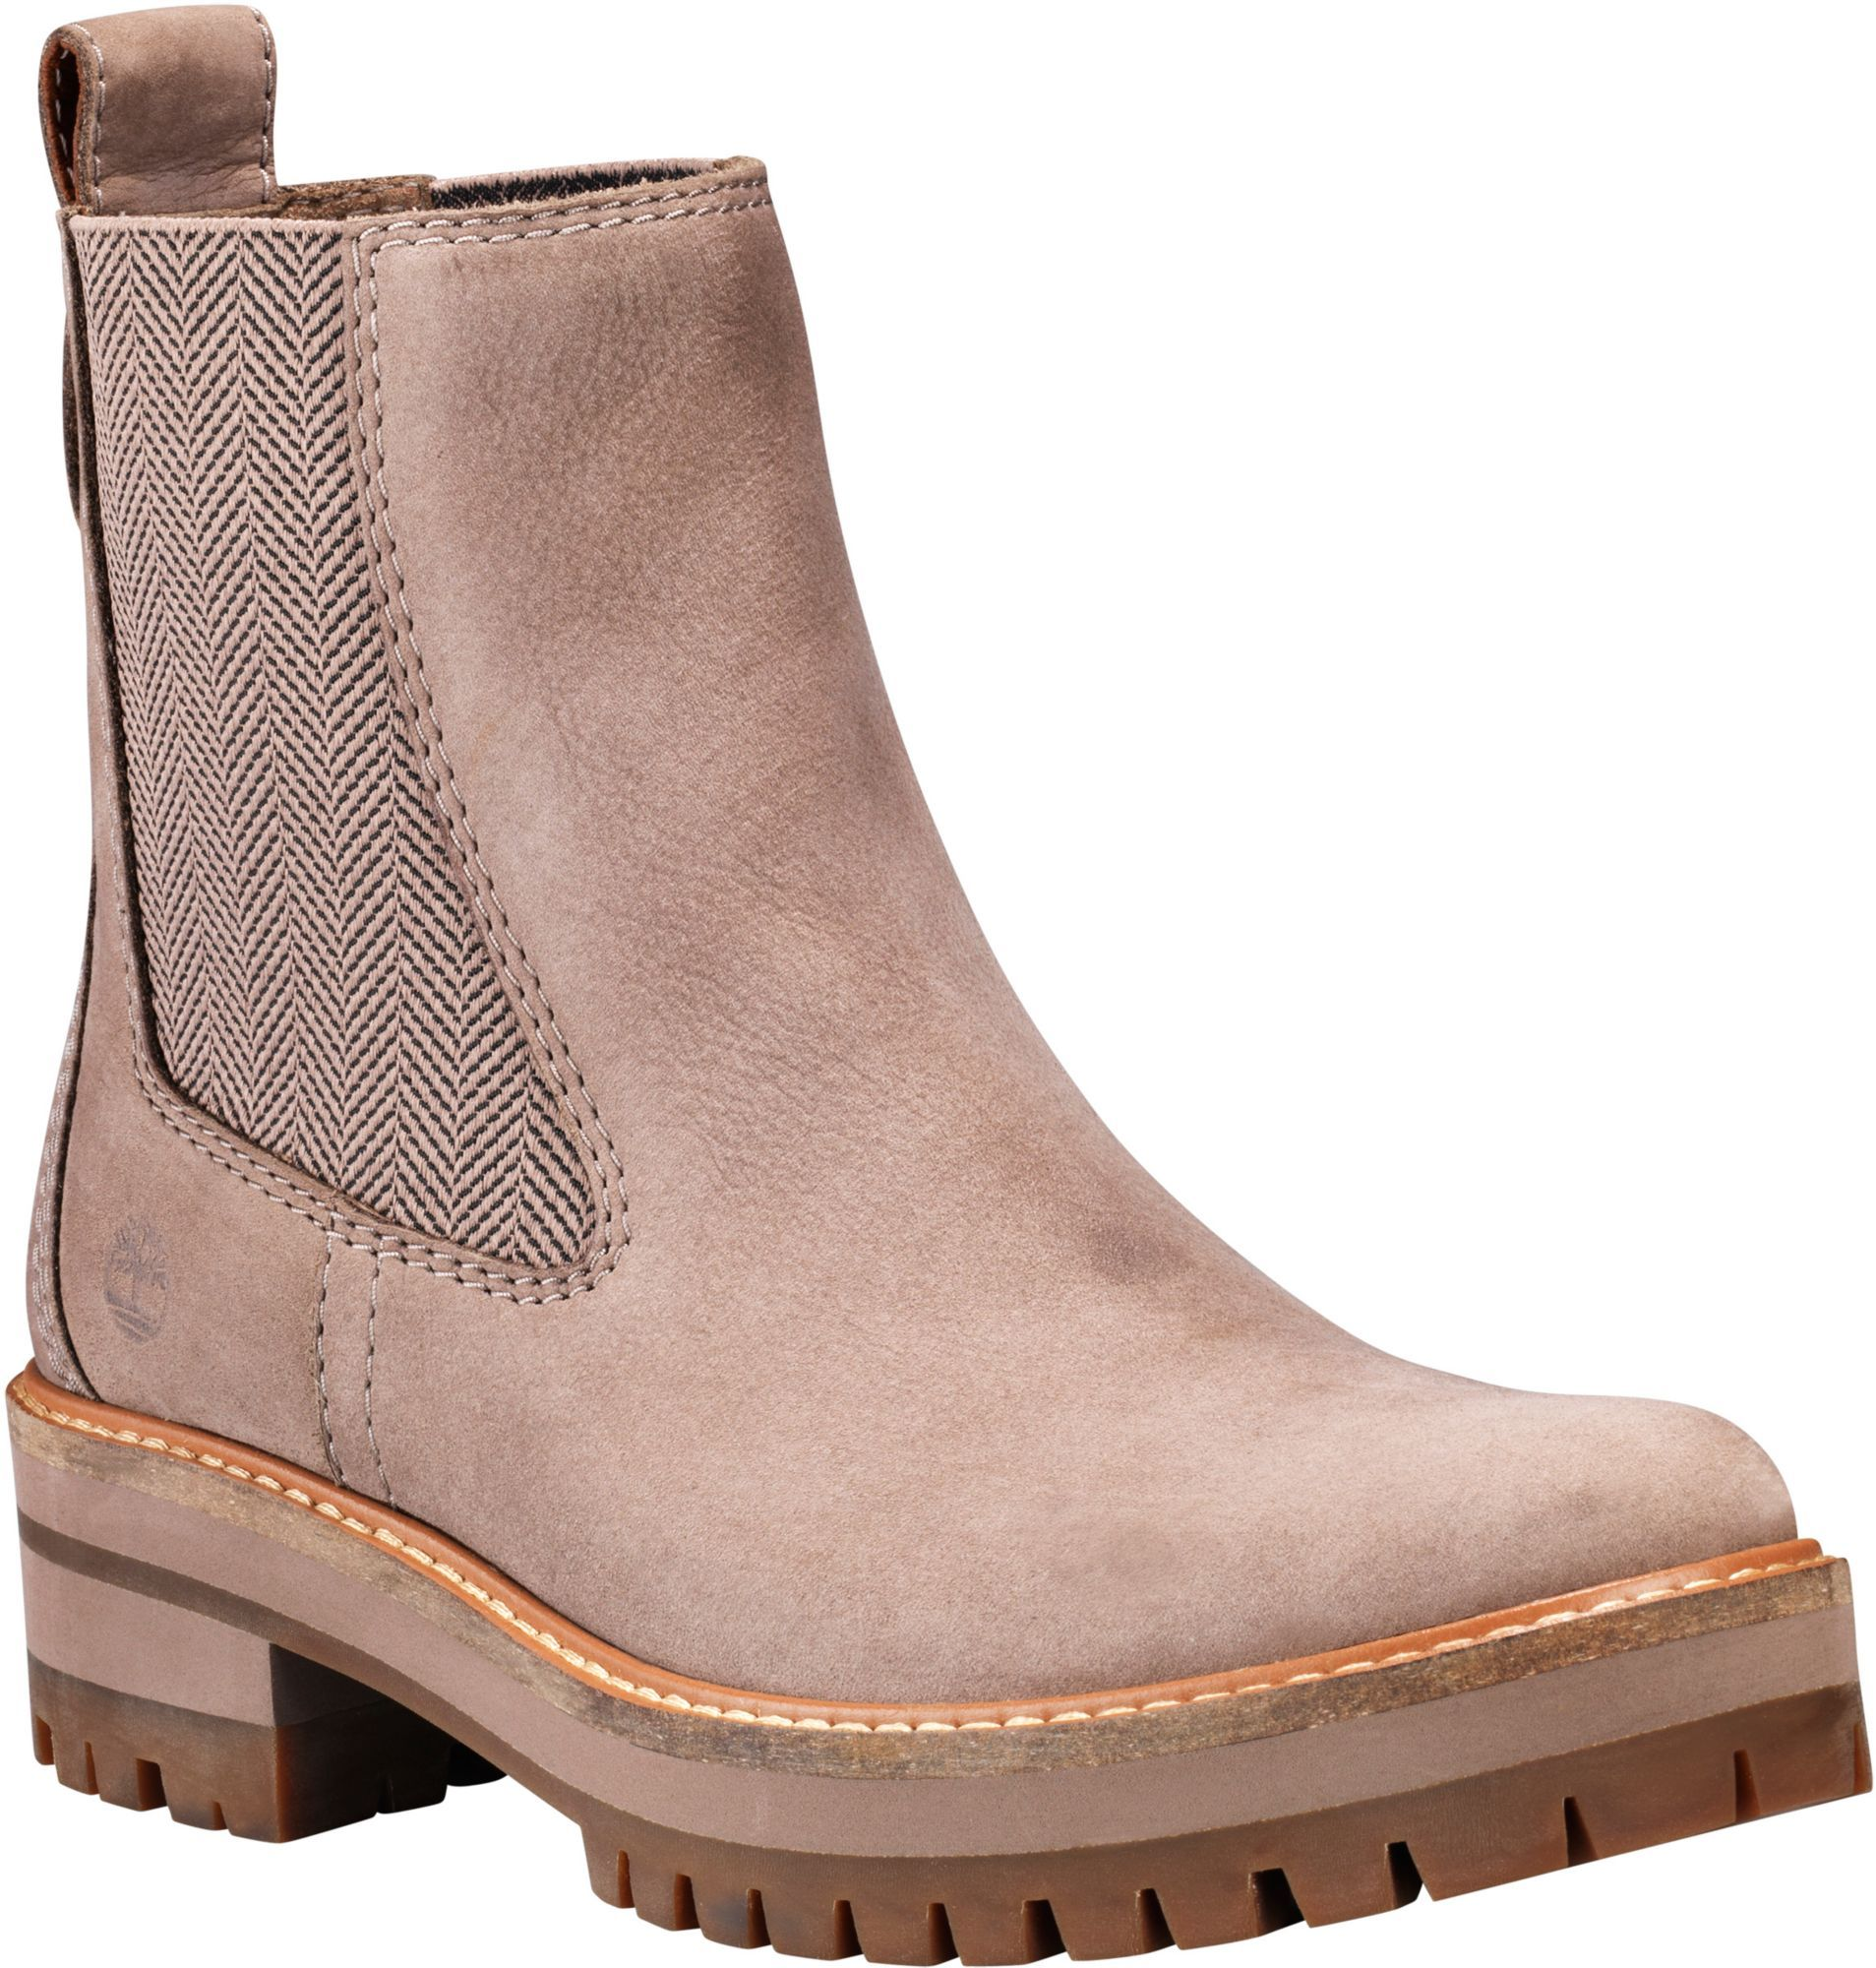 6f1e8e7bb Timberland Women's Courmayeur Valley Chelsea Boots in 2019 ...